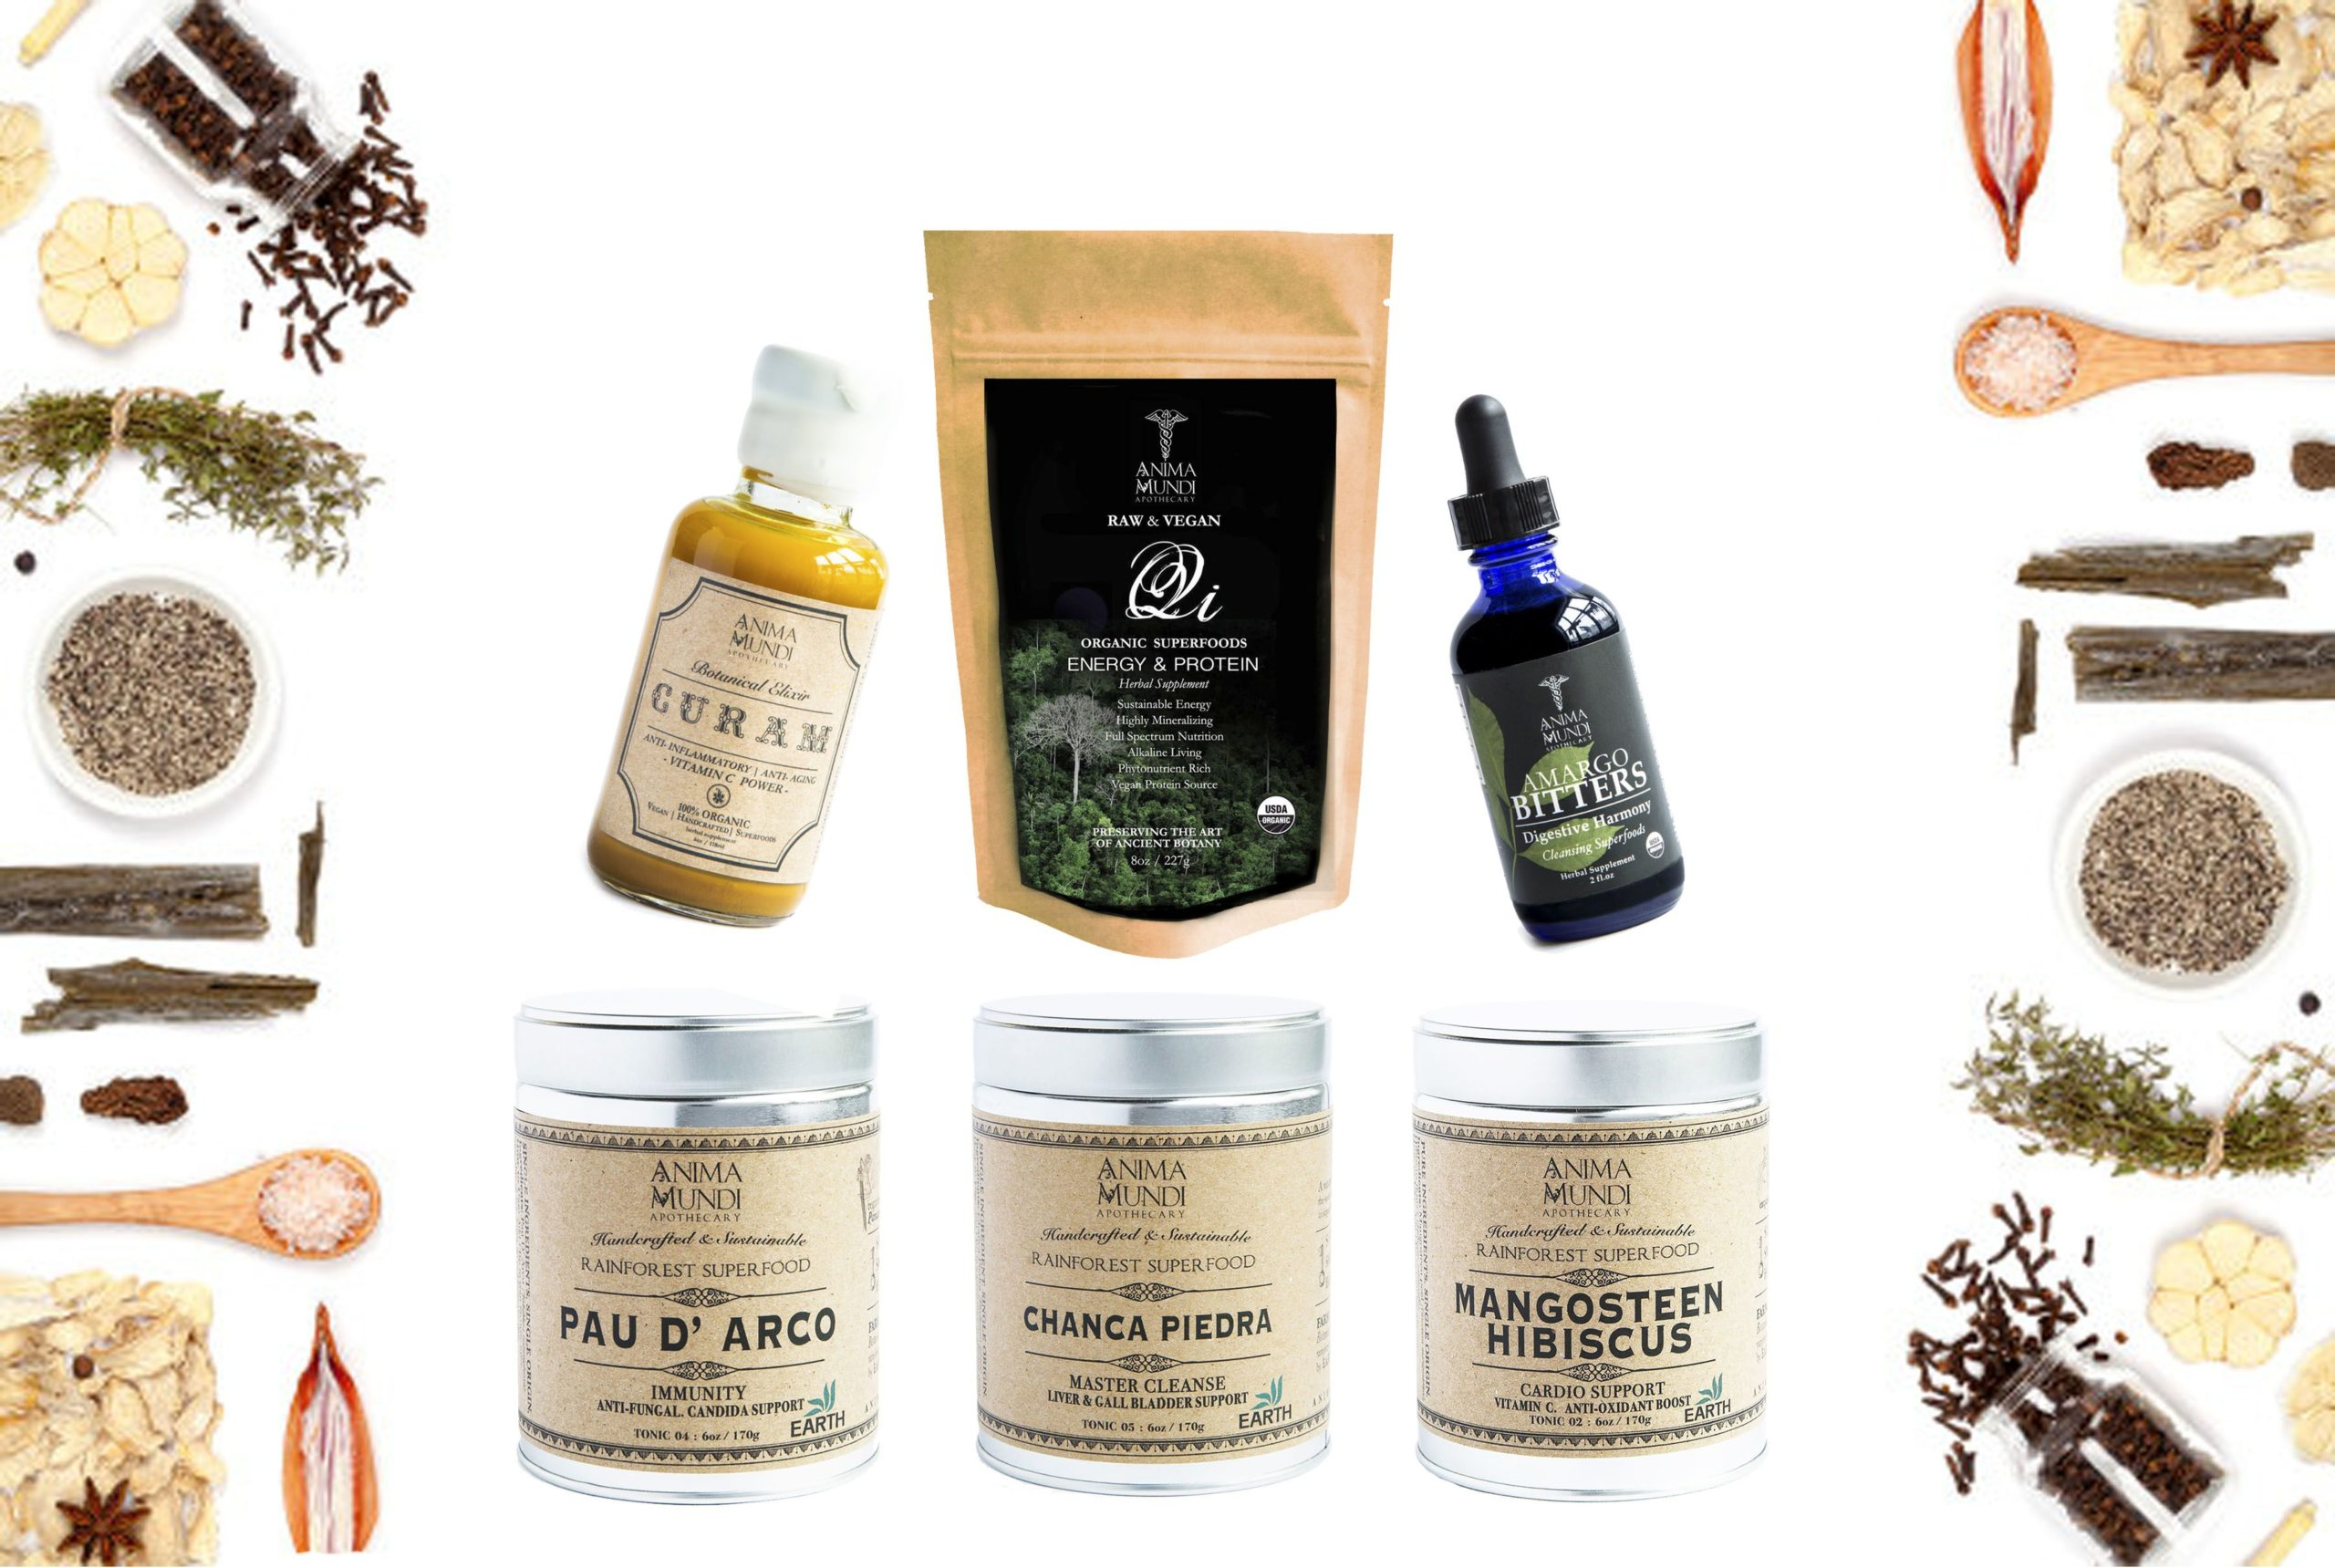 Some of the different products offered by Anima Mundi Apothecary.